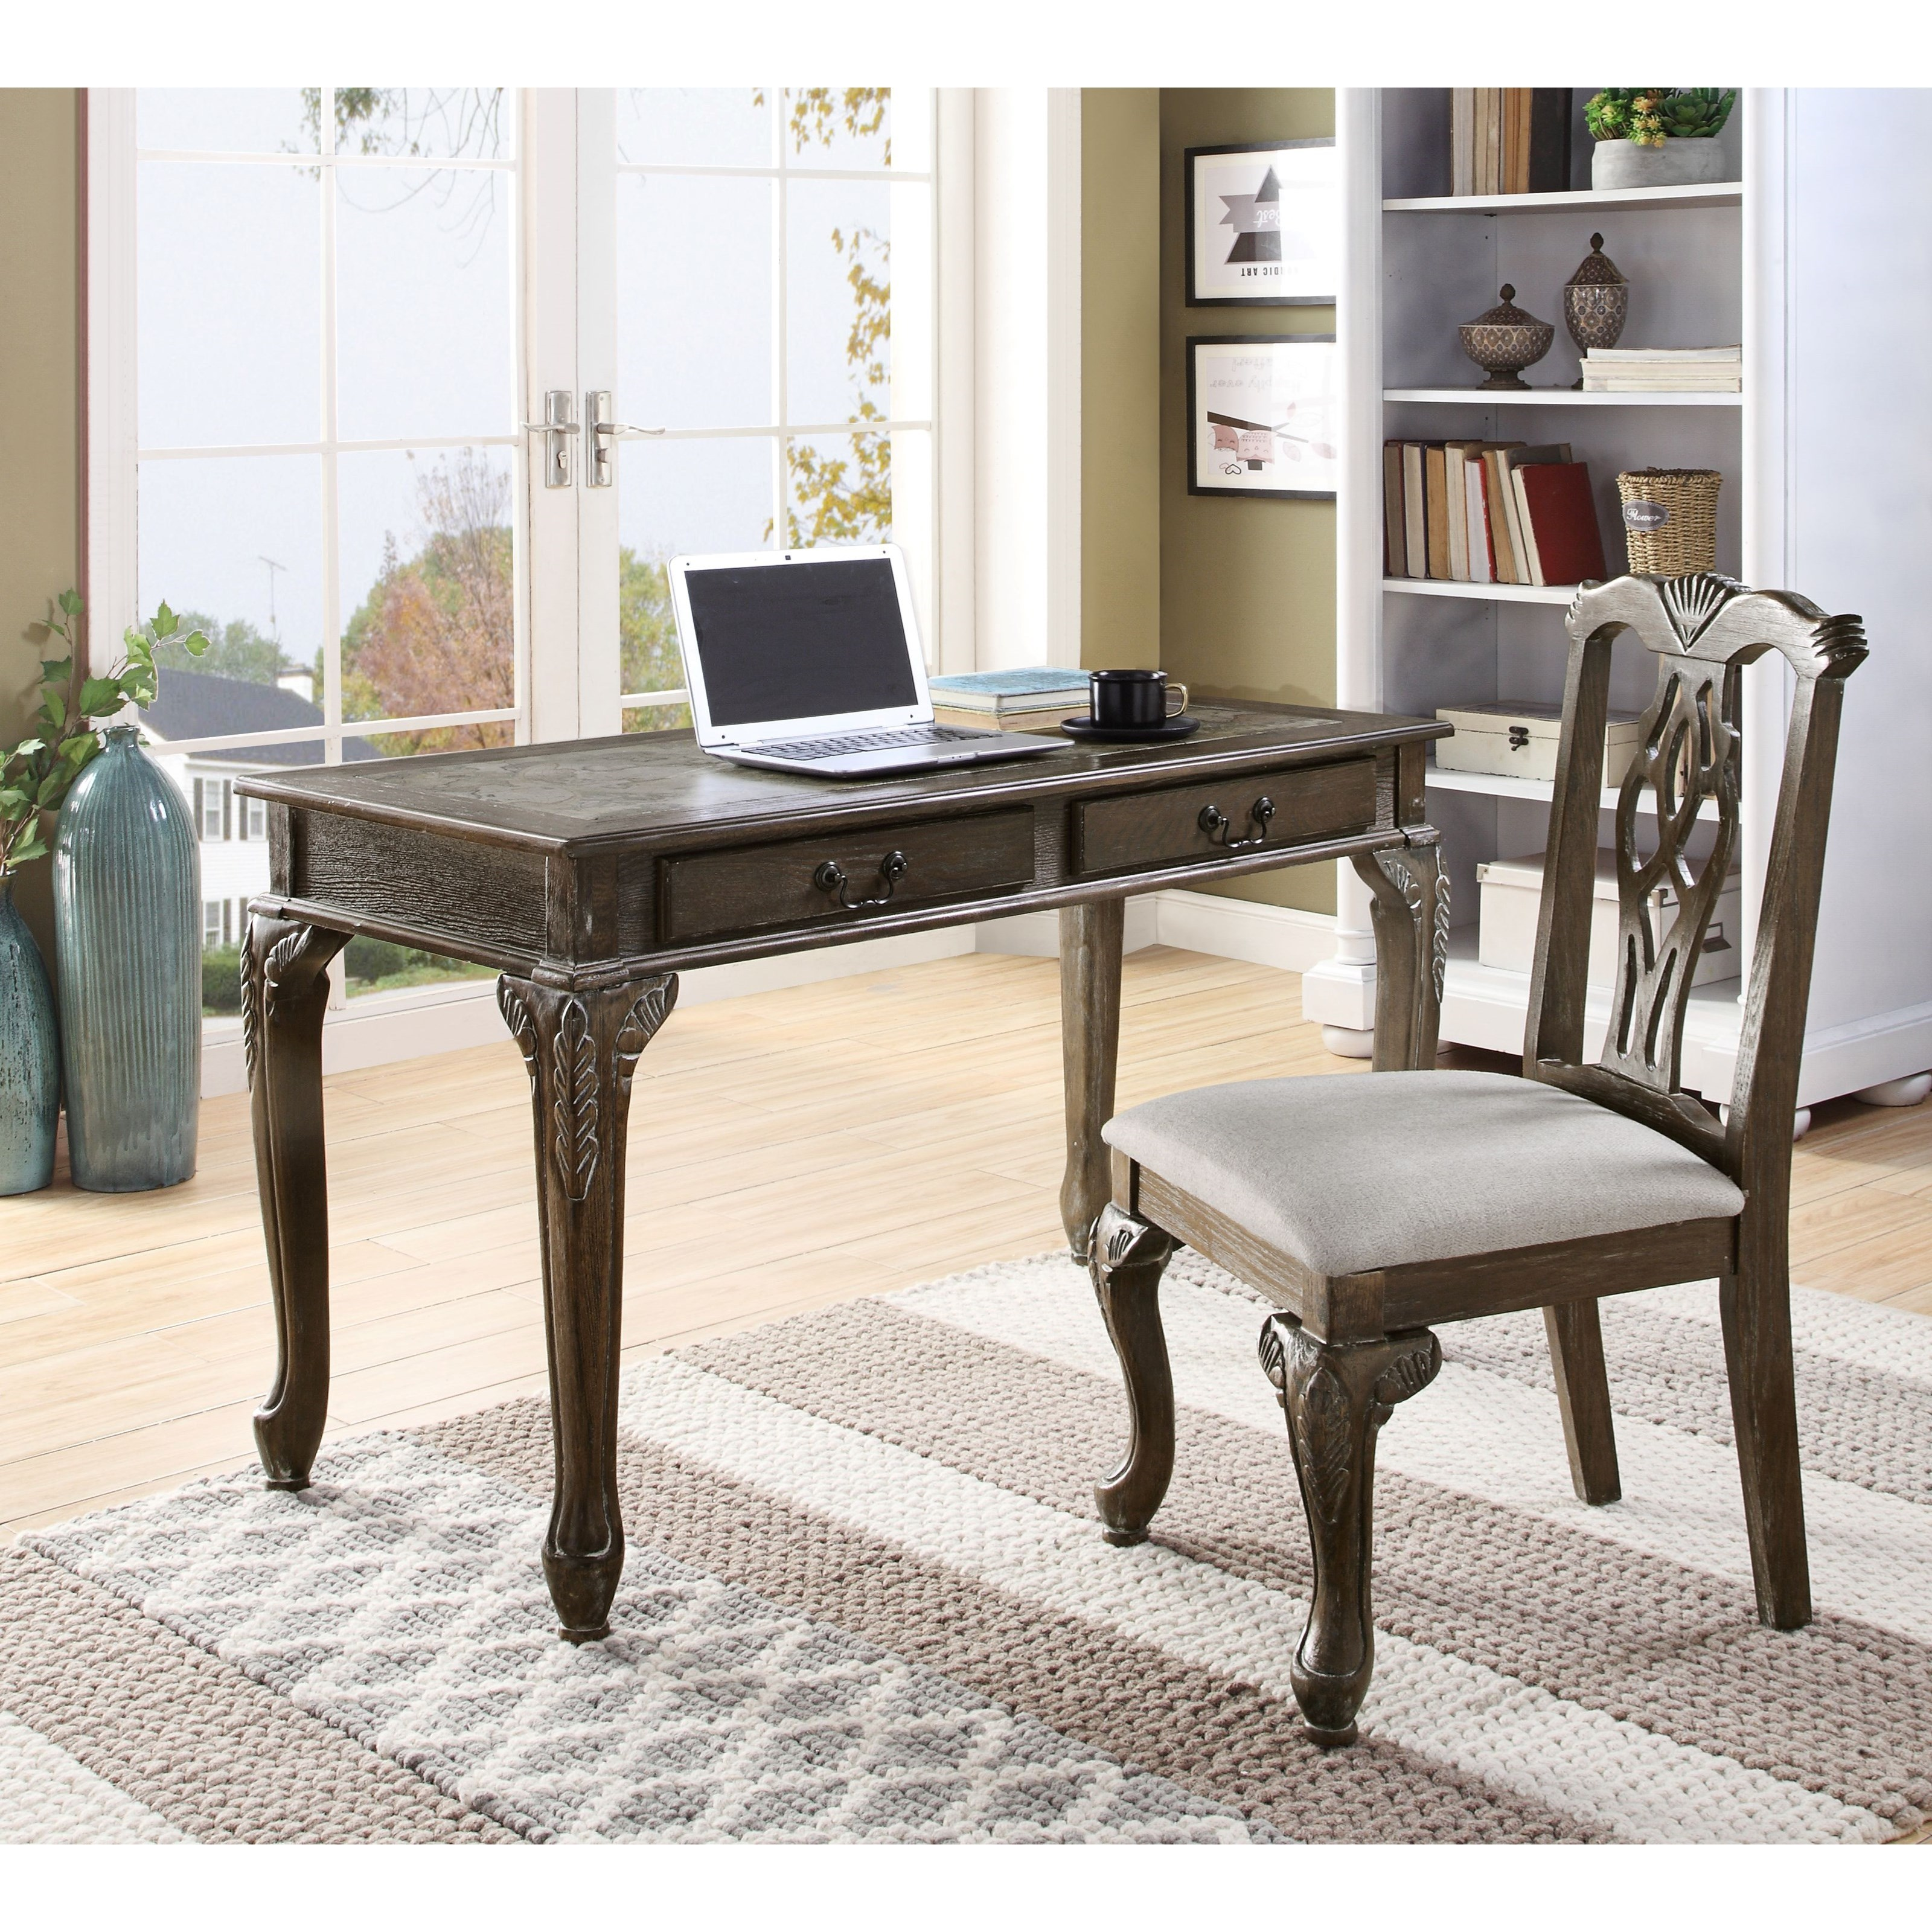 Desk And Chair Set Fairfax Traditional Home Office Desk Chair Set By Crown Mark At Dunk Bright Furniture